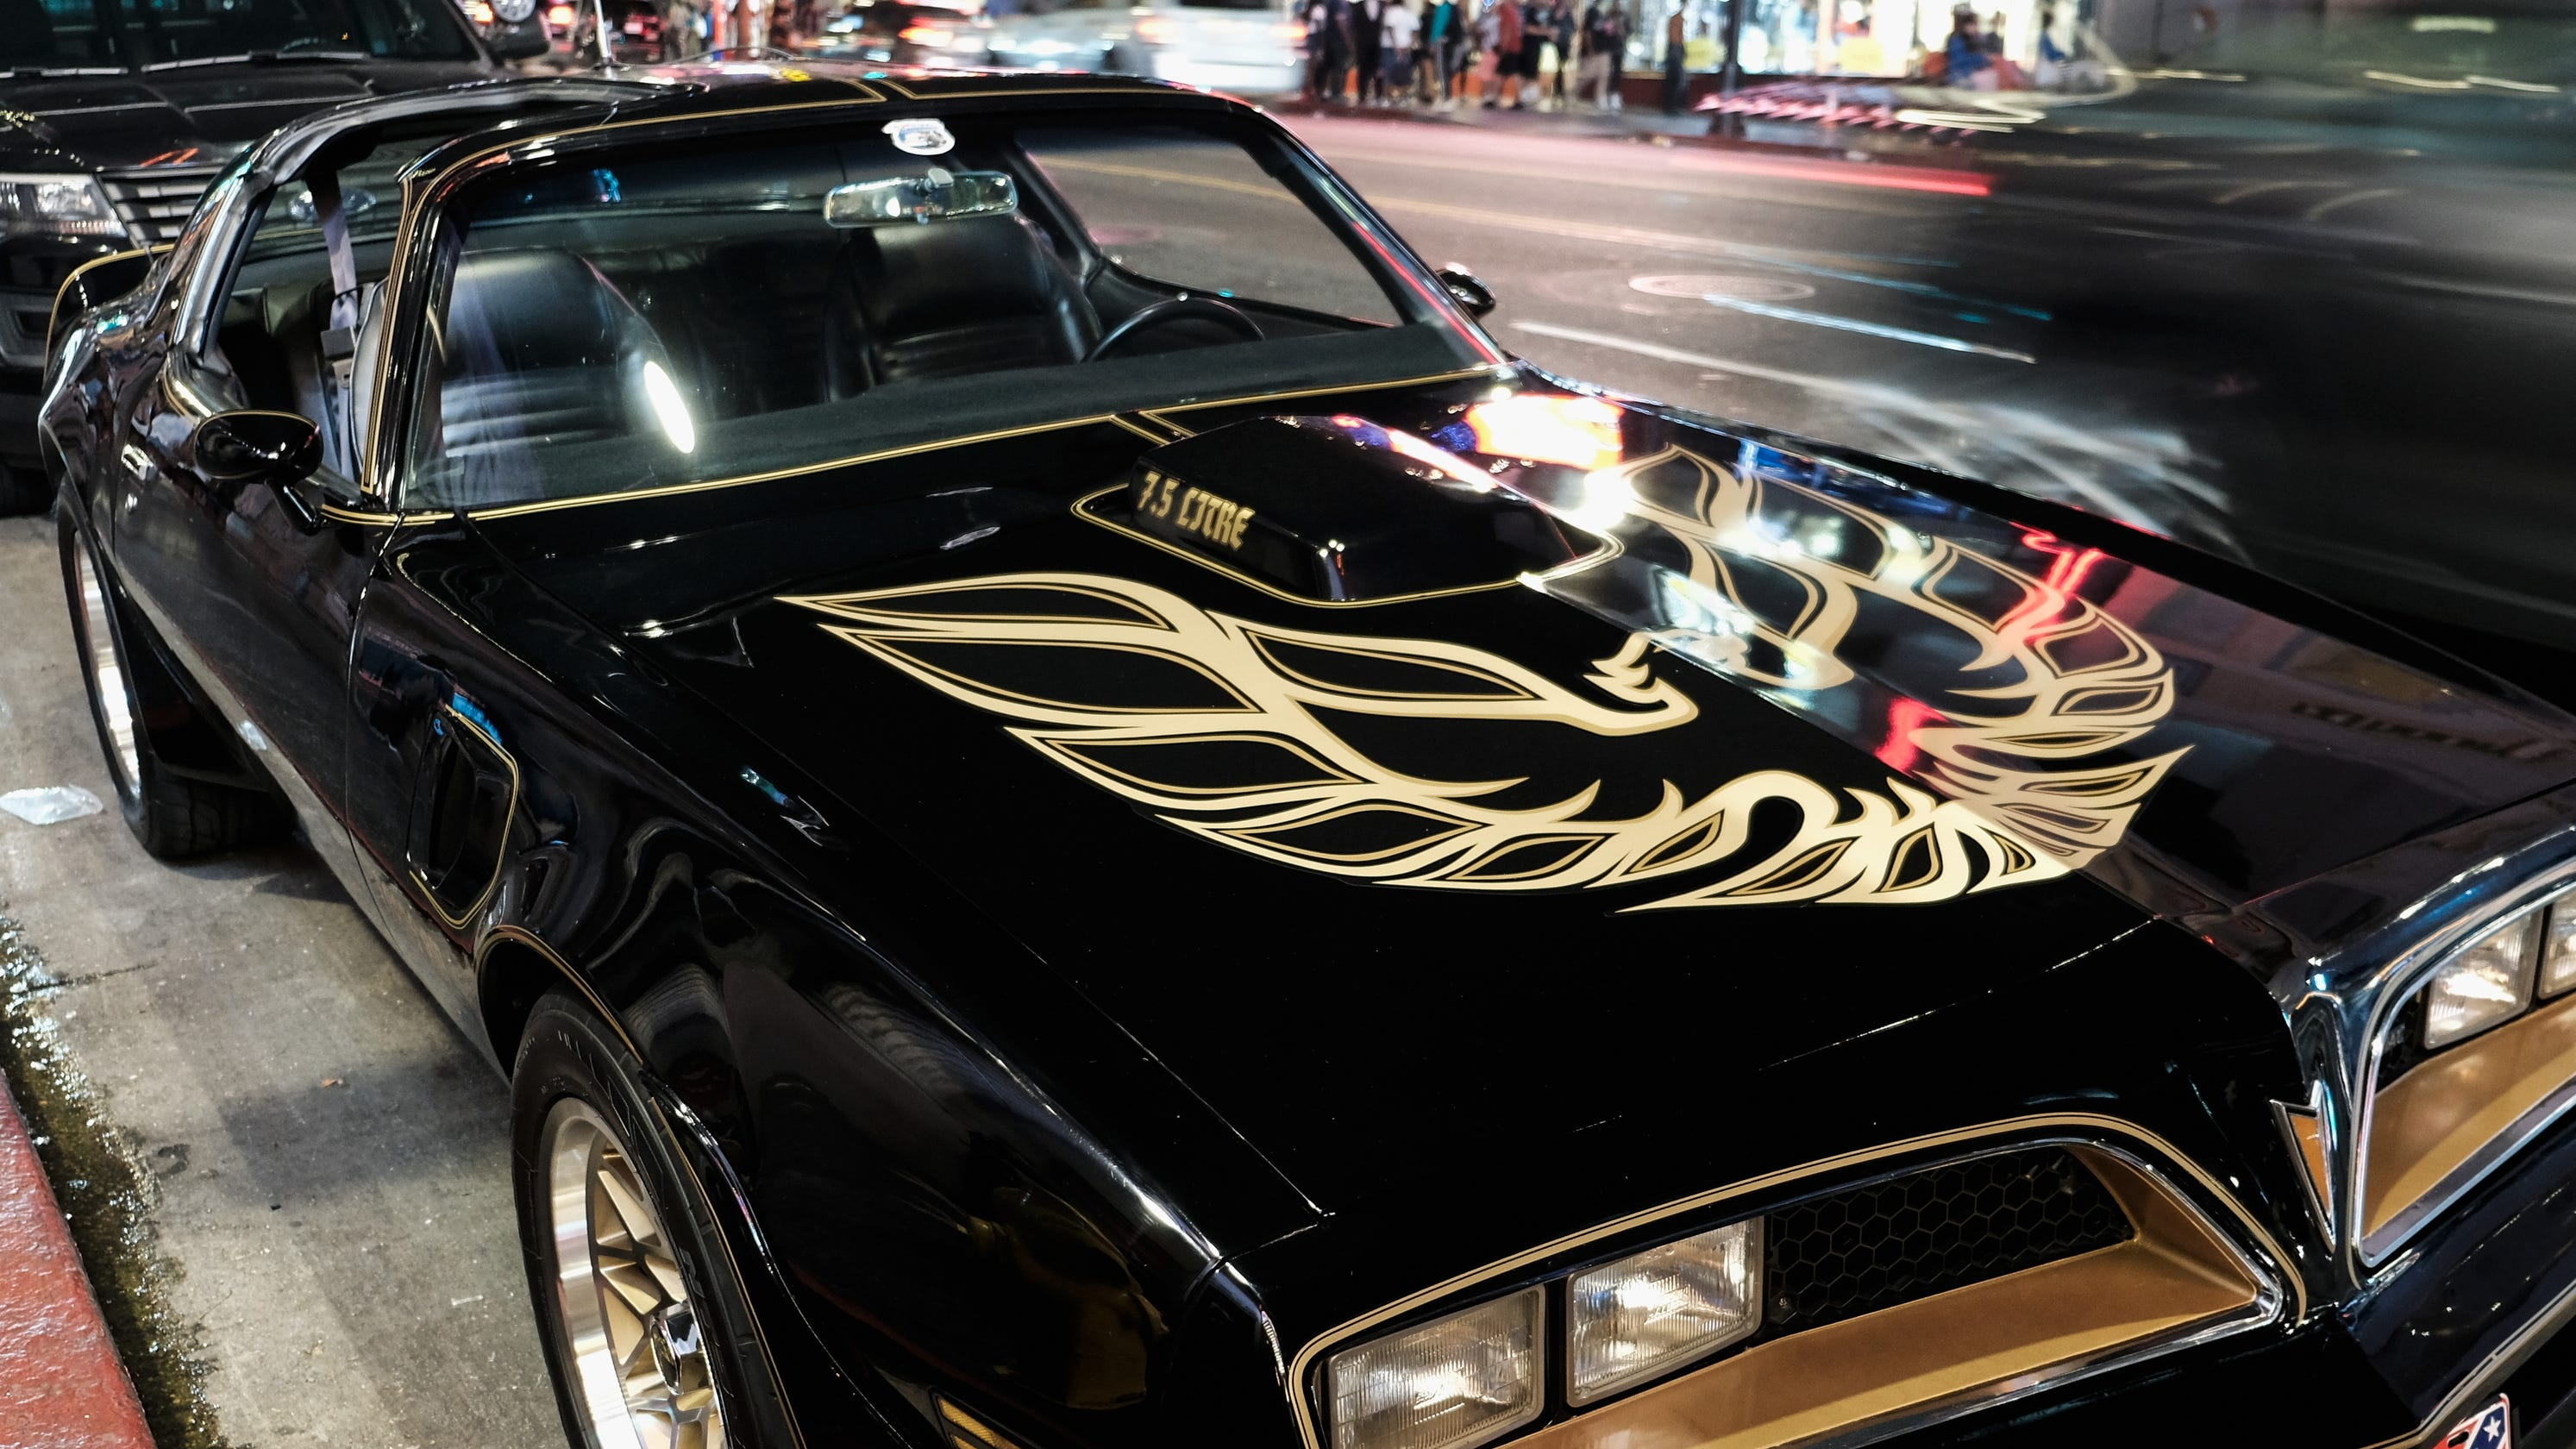 3bc53c3a Burt Reynolds' 'Smokey and the Bandit' makes a '77 Trans Am worth $76K